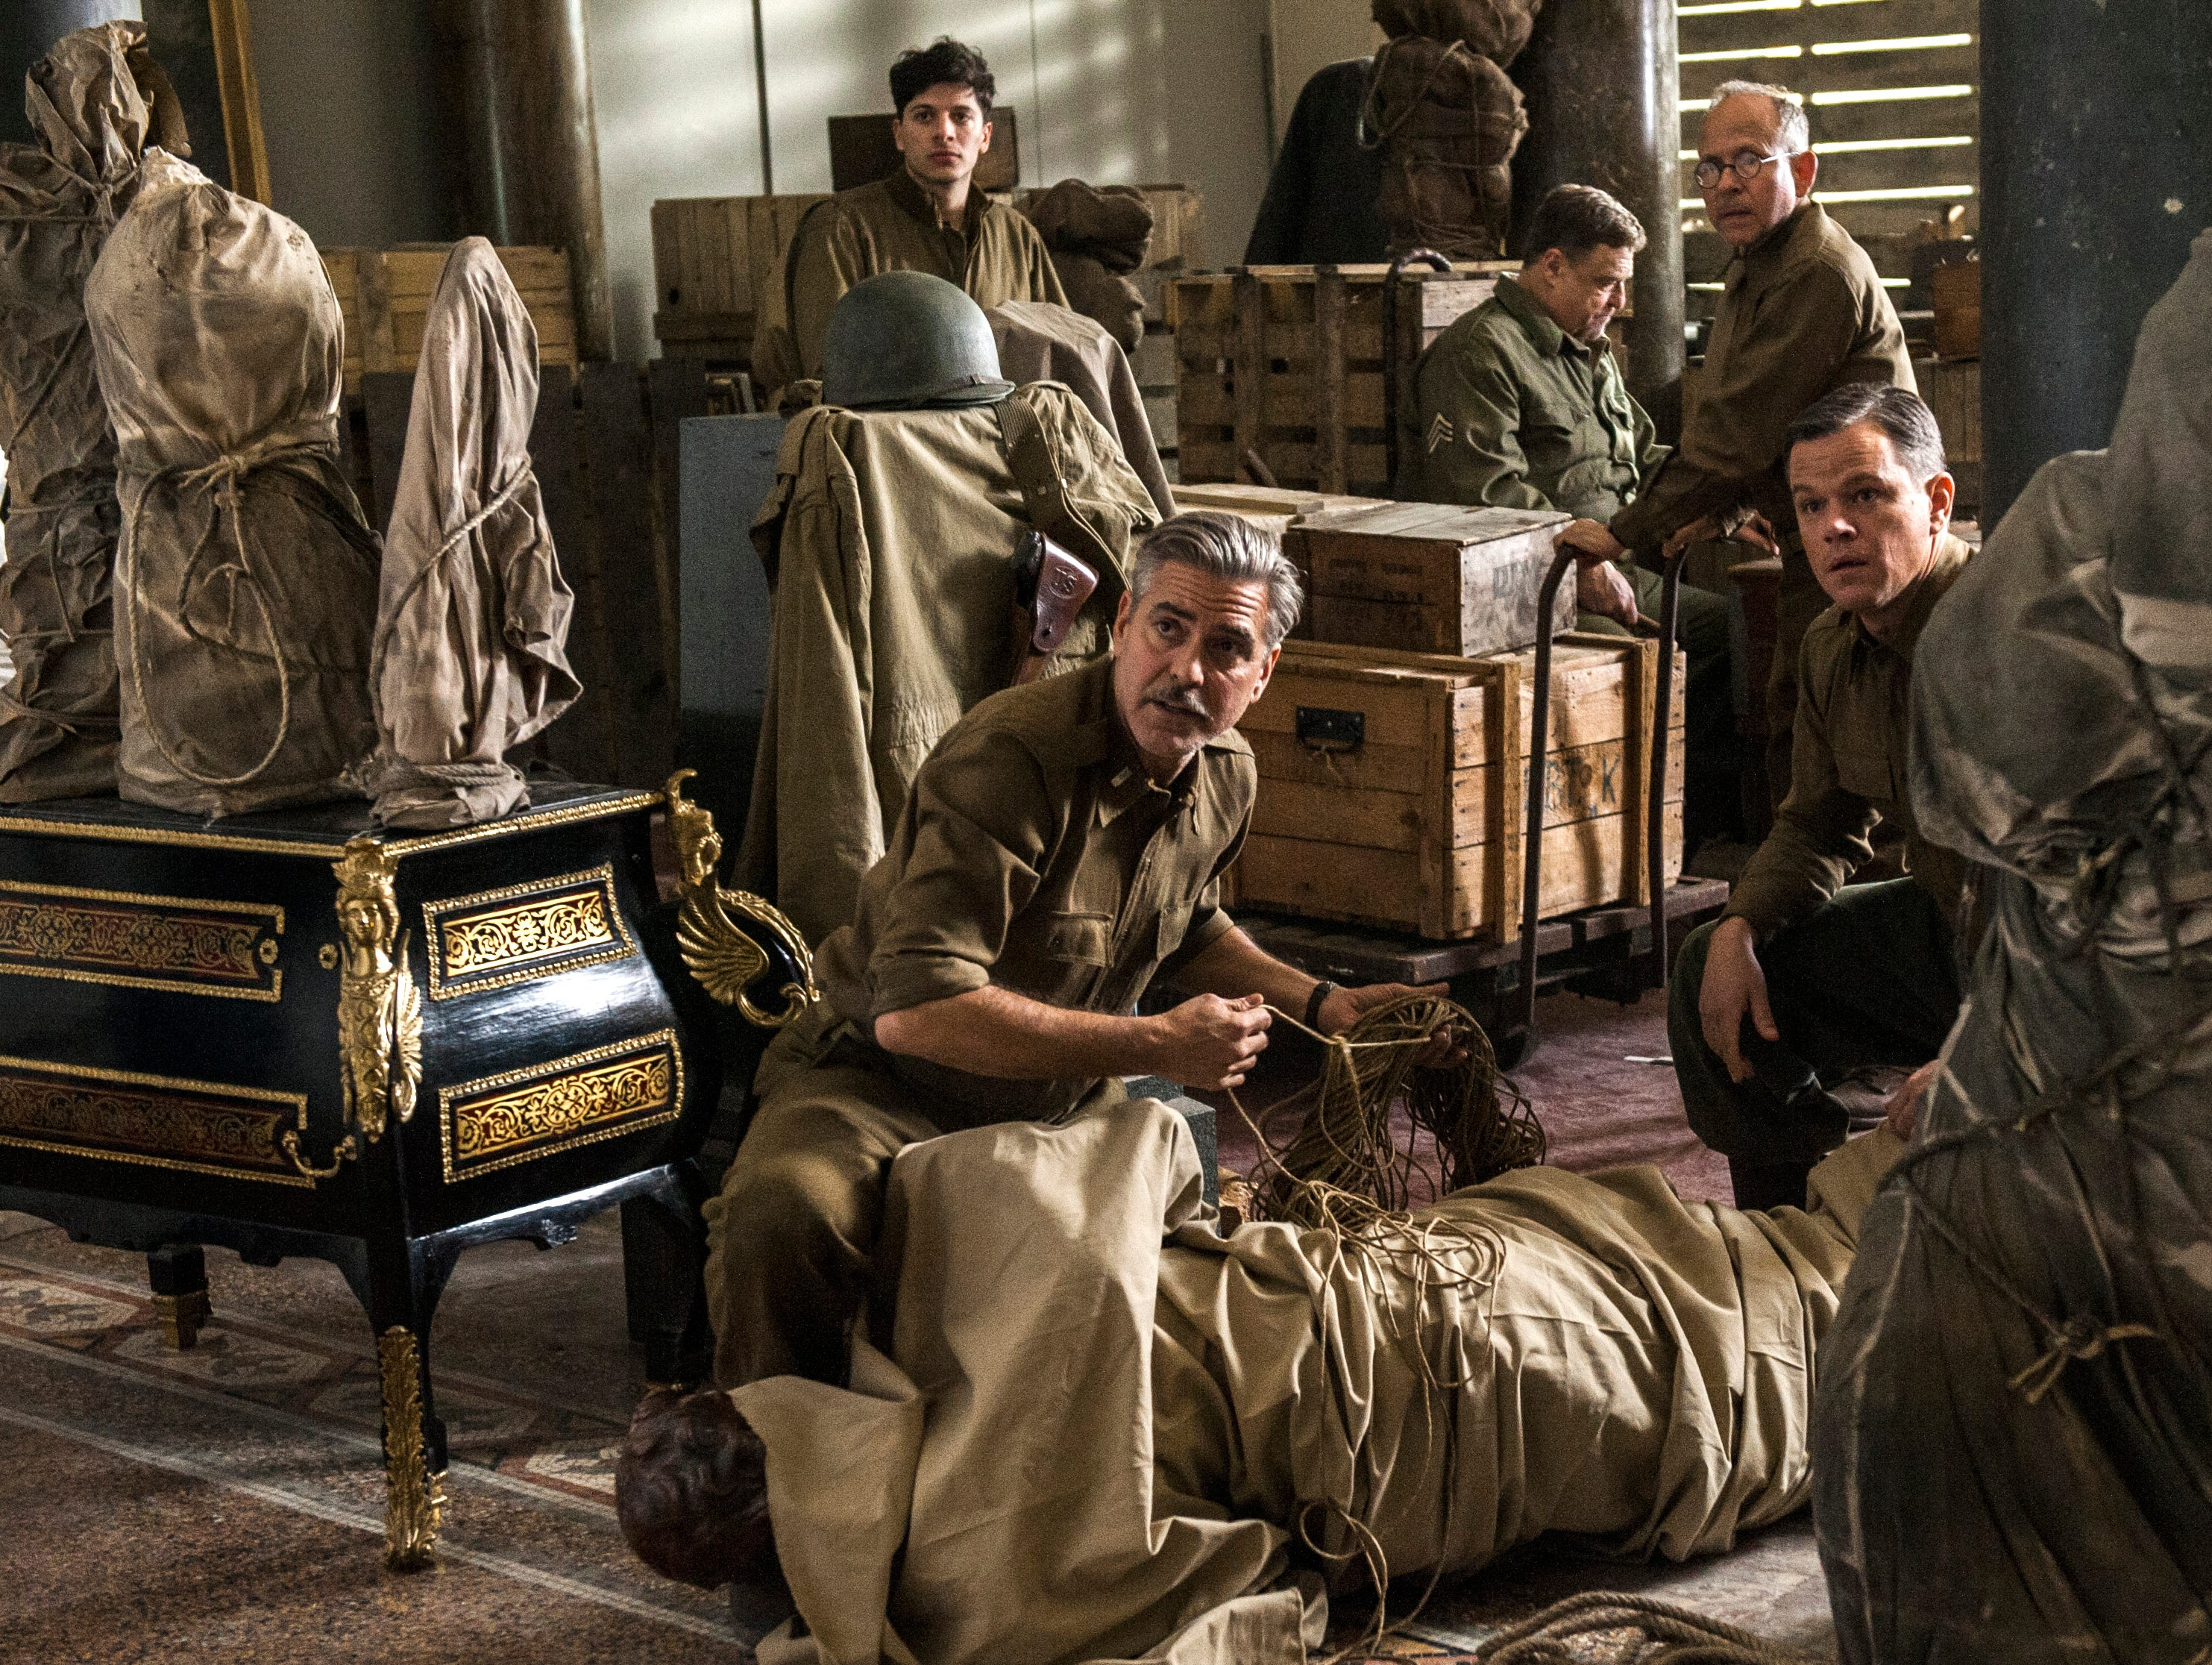 George Clooney, clockwise from front left, Sam Epstein, John Goodman, Bob Balaban and Matt Damon star in 'The Monuments Men,' based on the true story of a World War II troop of art experts searching for stolen masterpieces.